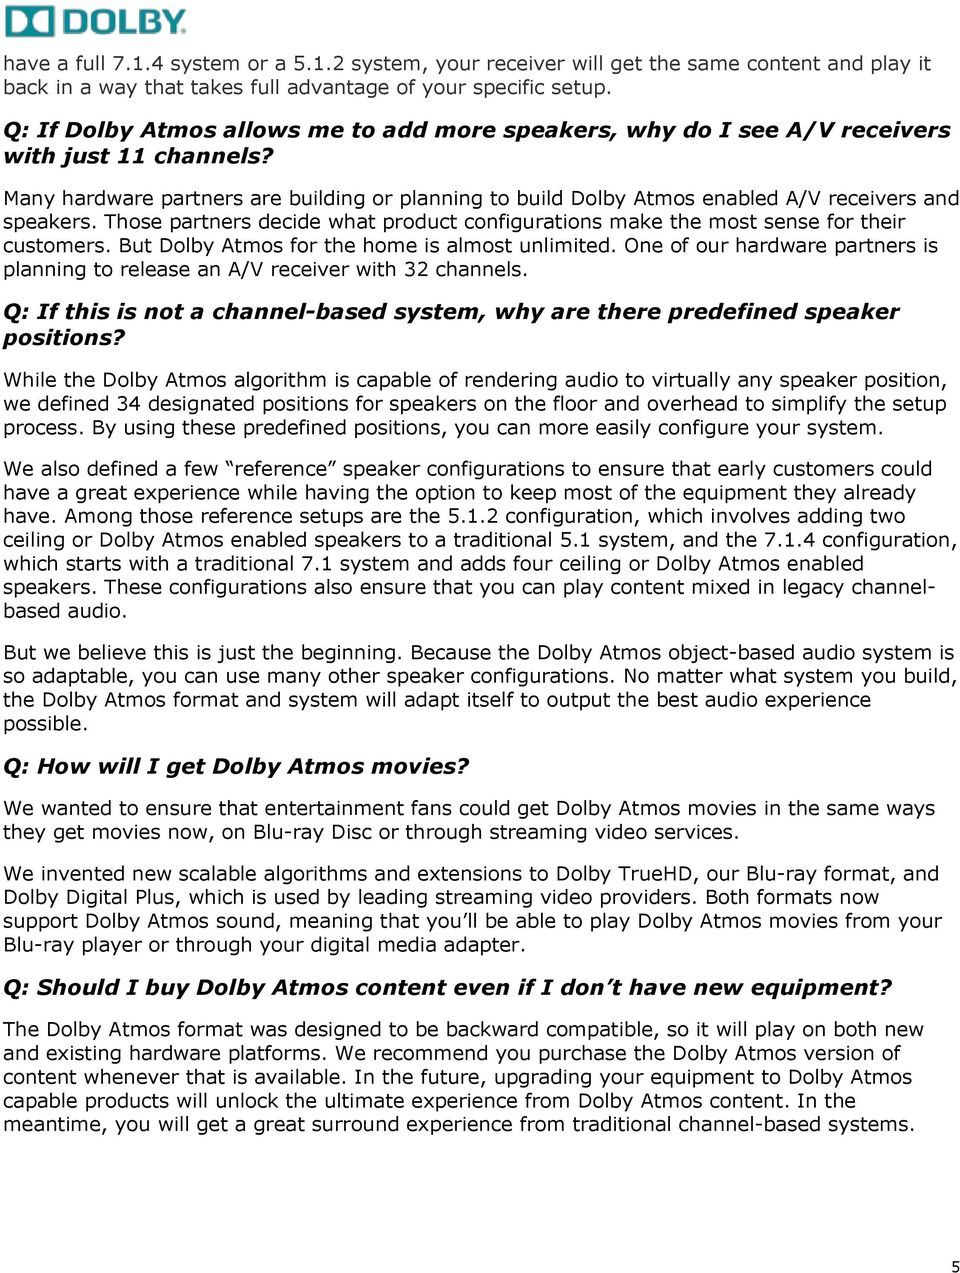 FREQUENTLY ASKED QUESTIONS ABOUT DOLBY ATMOS FOR THE HOME - PDF